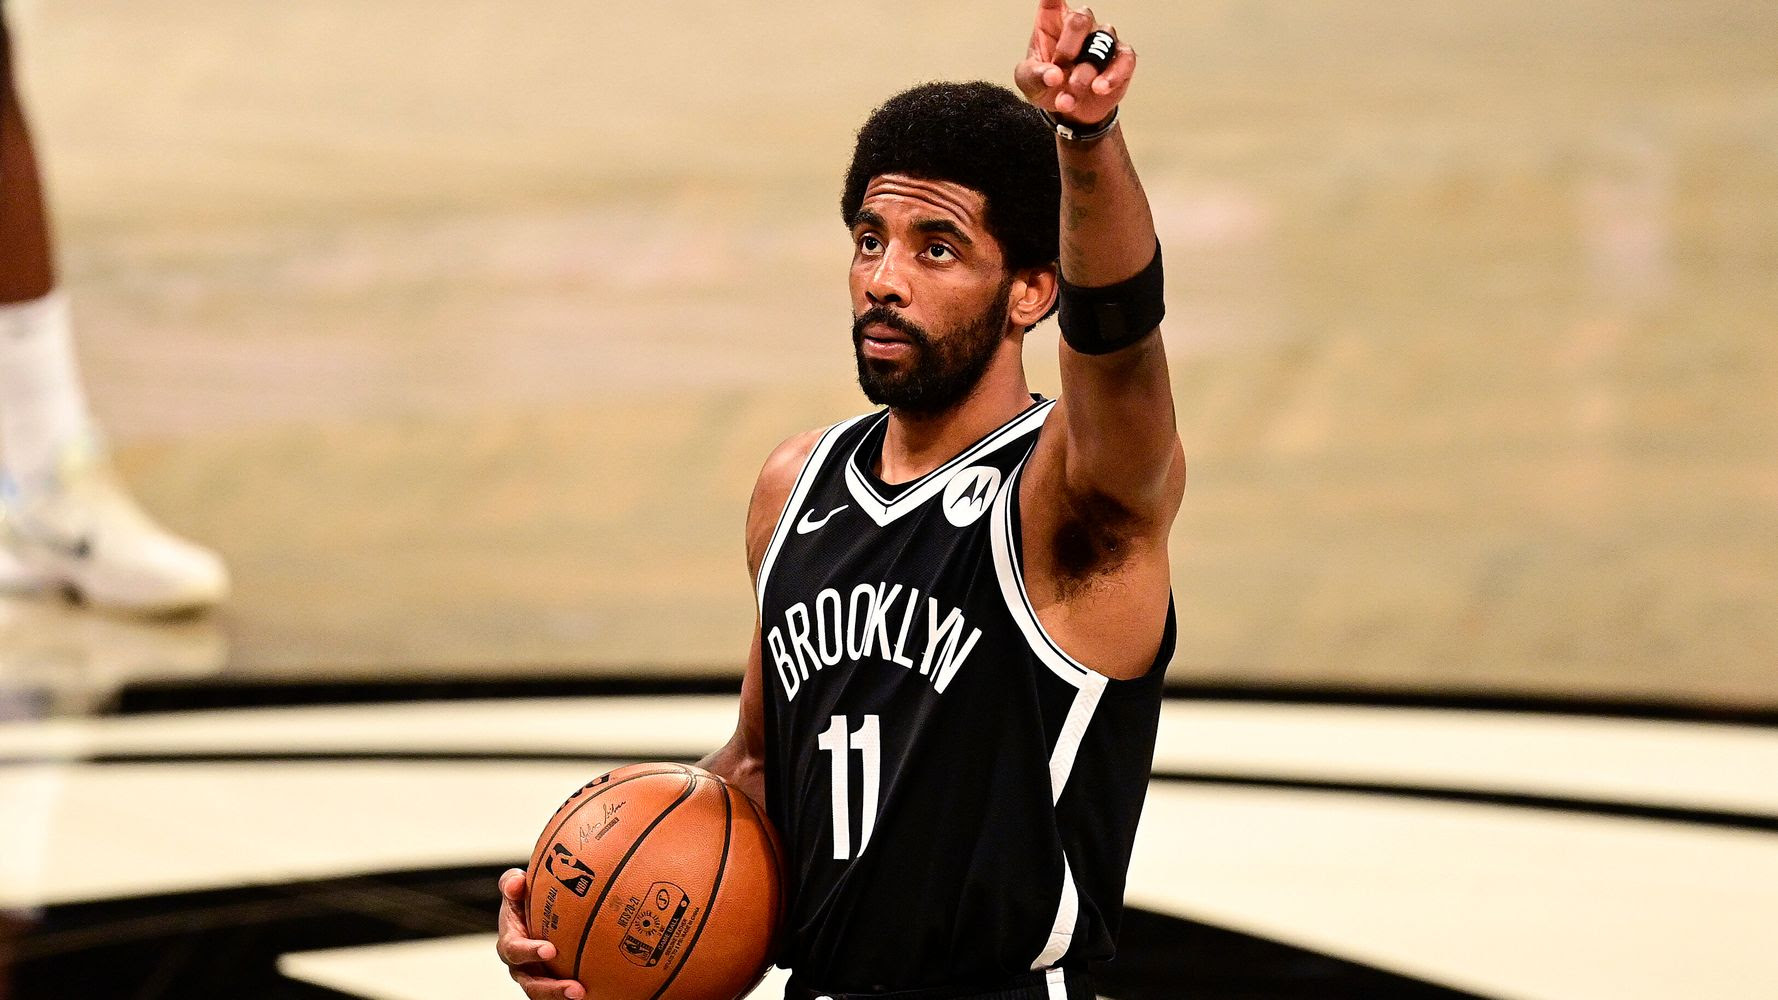 Kyrie Irving Says COVID-19 Vaccine Refusal Is 'What's Best For Me'